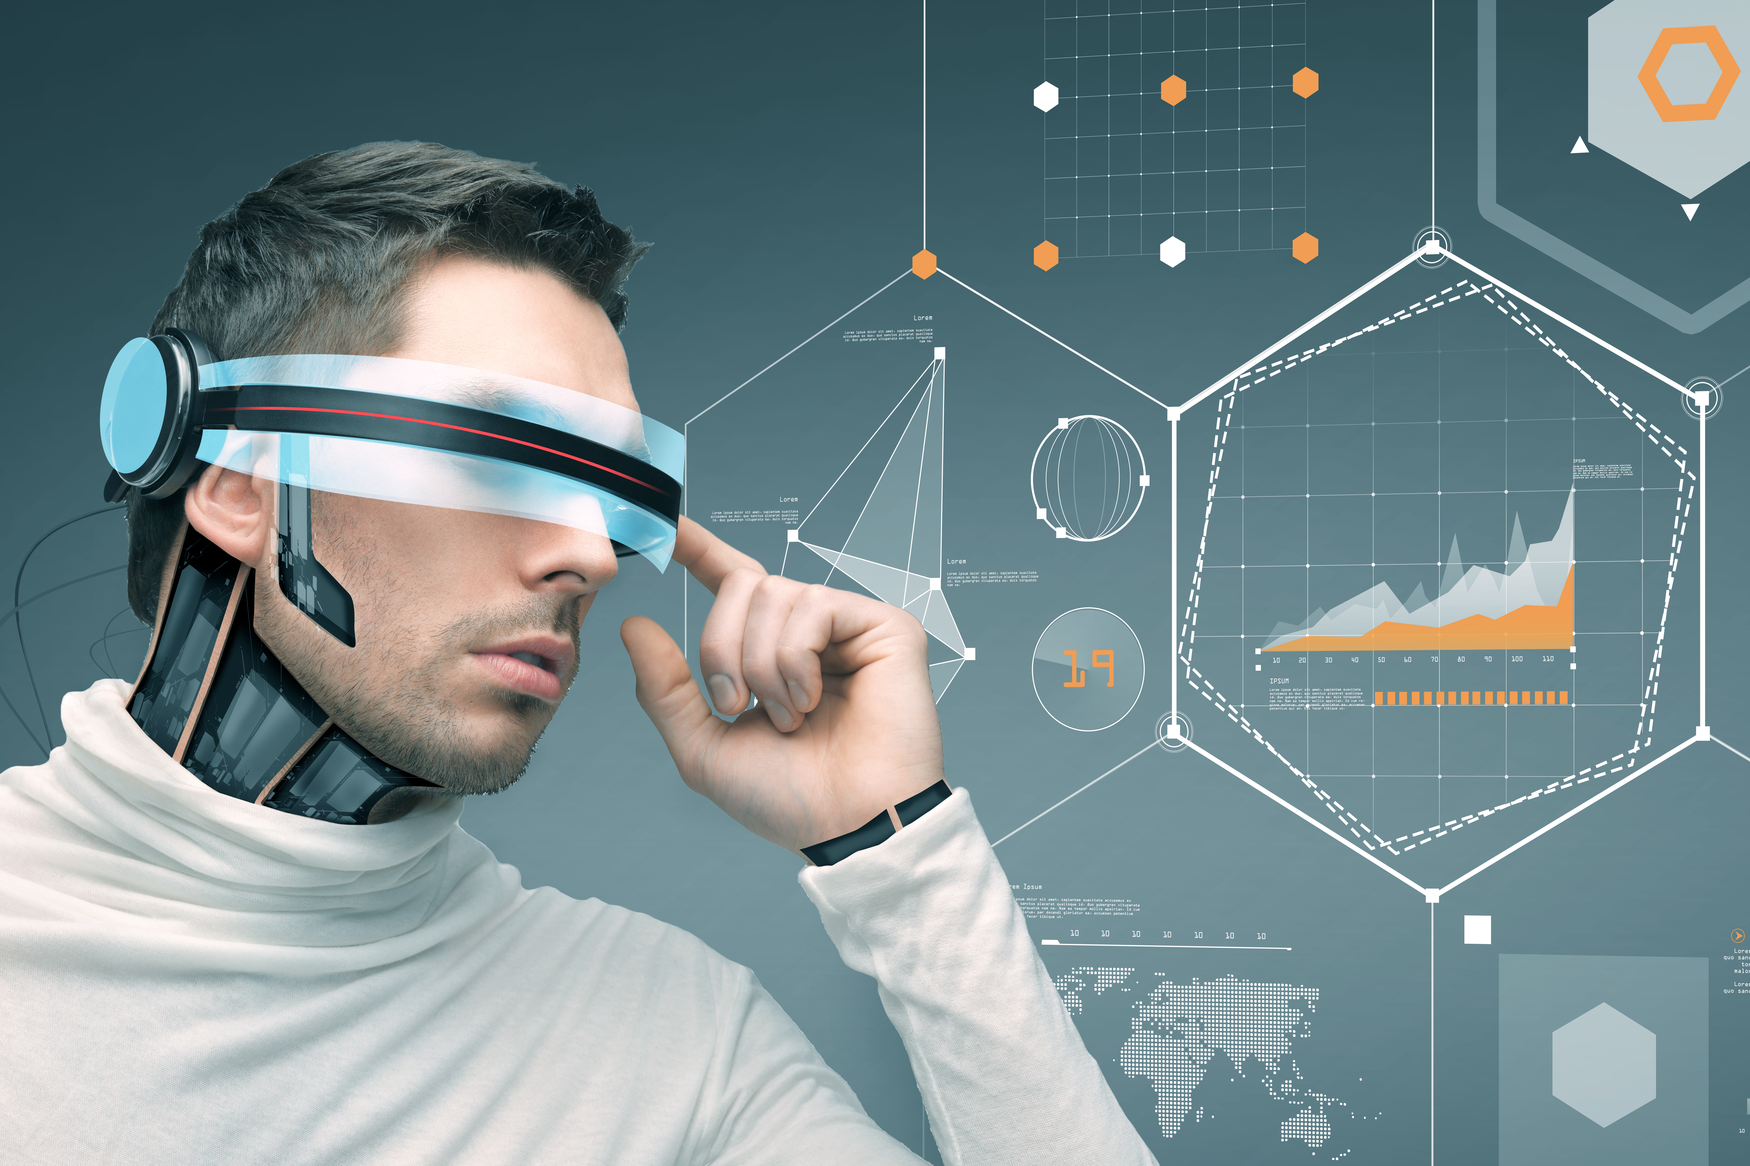 An image of a man using an animiated high-tech headset against a backdrop of graphs, facts and figures connoting sector trends.